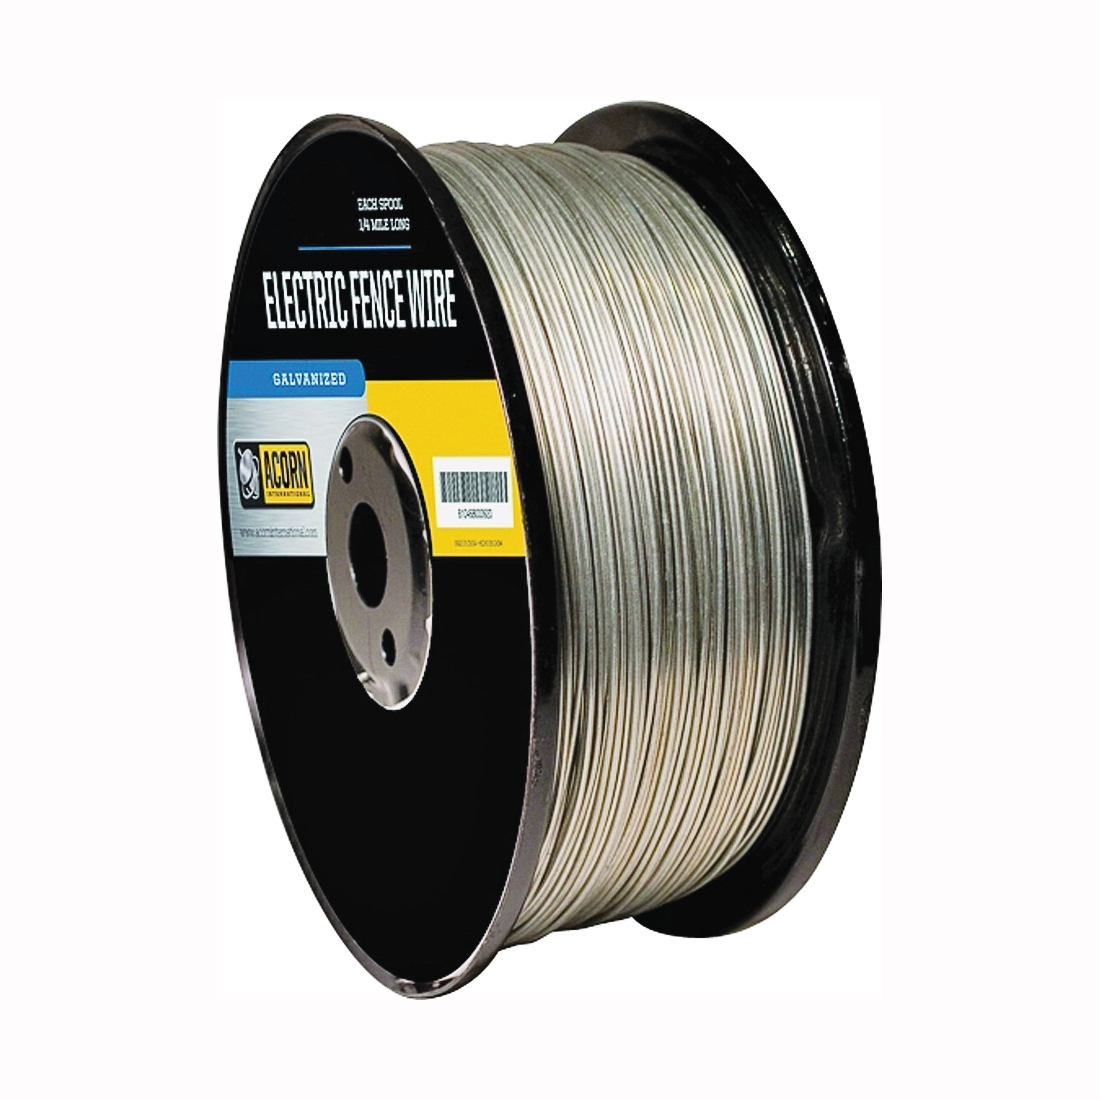 Picture of Acorn International EFW1914 Electric Fence Wire, 19 ga Wire, Metal Conductor, 1/4 mile L